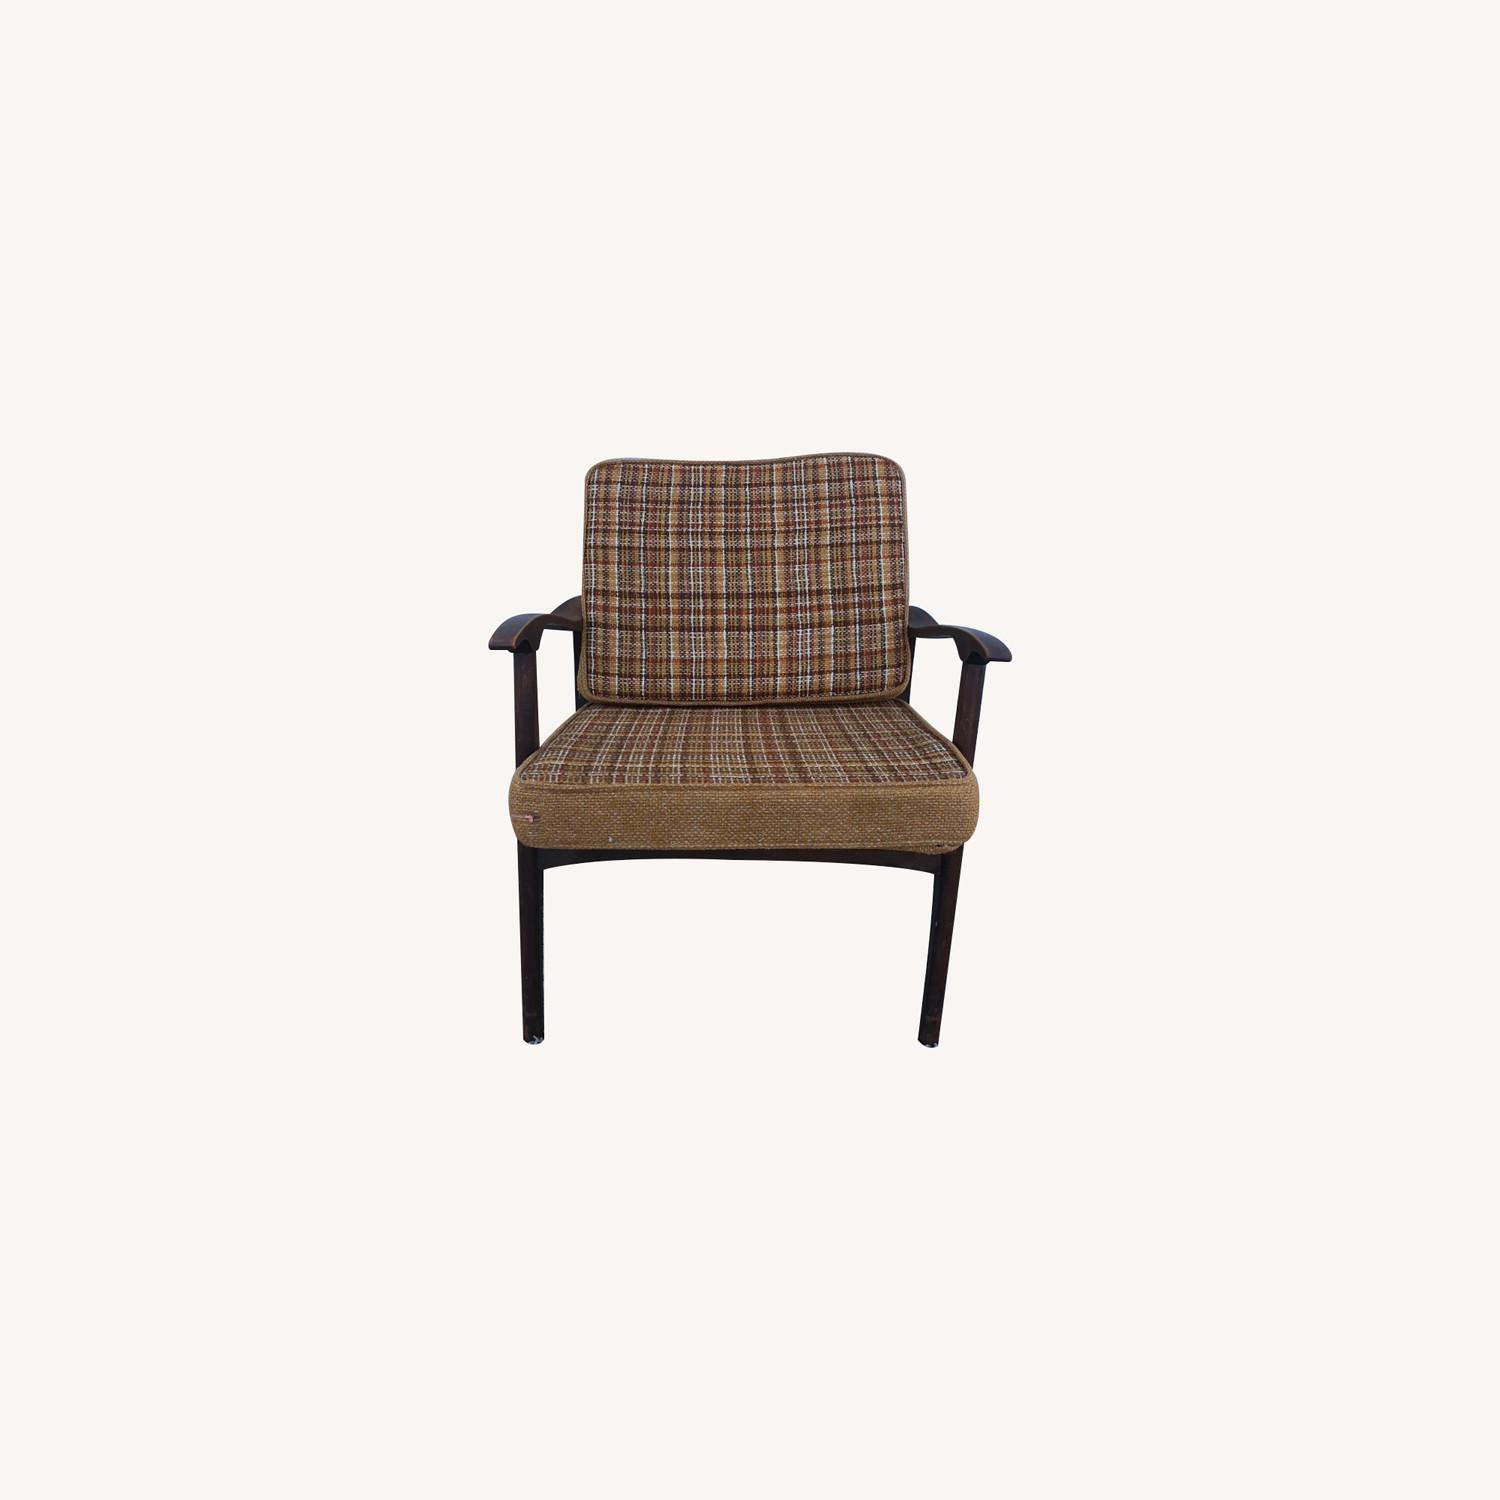 Mid Century Lounge Chair with Plaid Upholstery - image-0